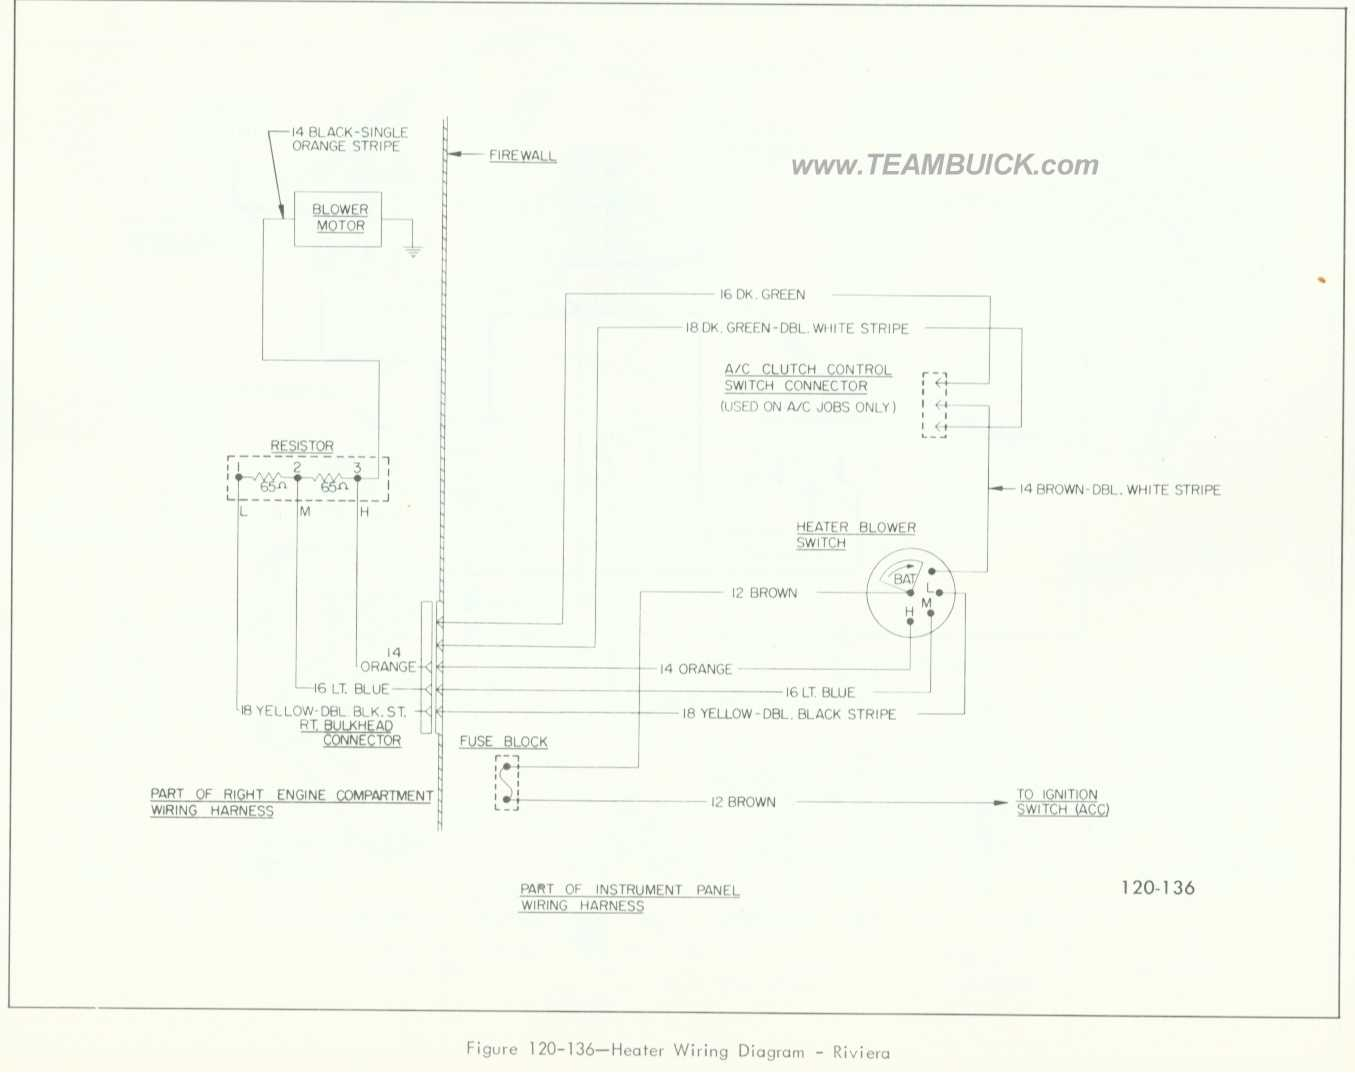 1966 Buick Skylark Wiring Diagram Electrical Schematics Diagrams Gs400 Riviera Circuit Connection U2022 Frame